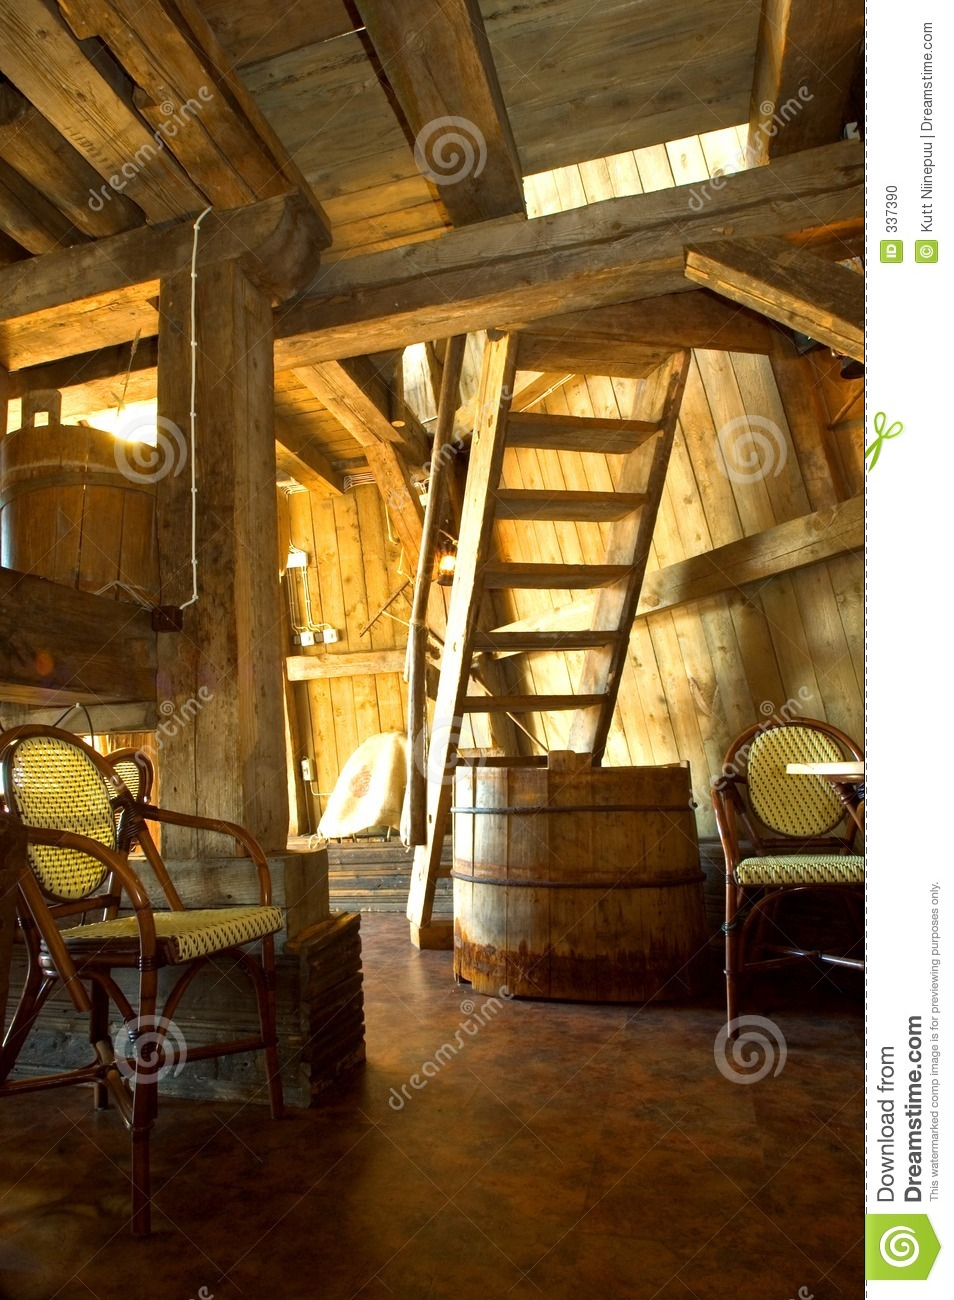 Old Windmill Interior Stock Photo Image Of Stairs